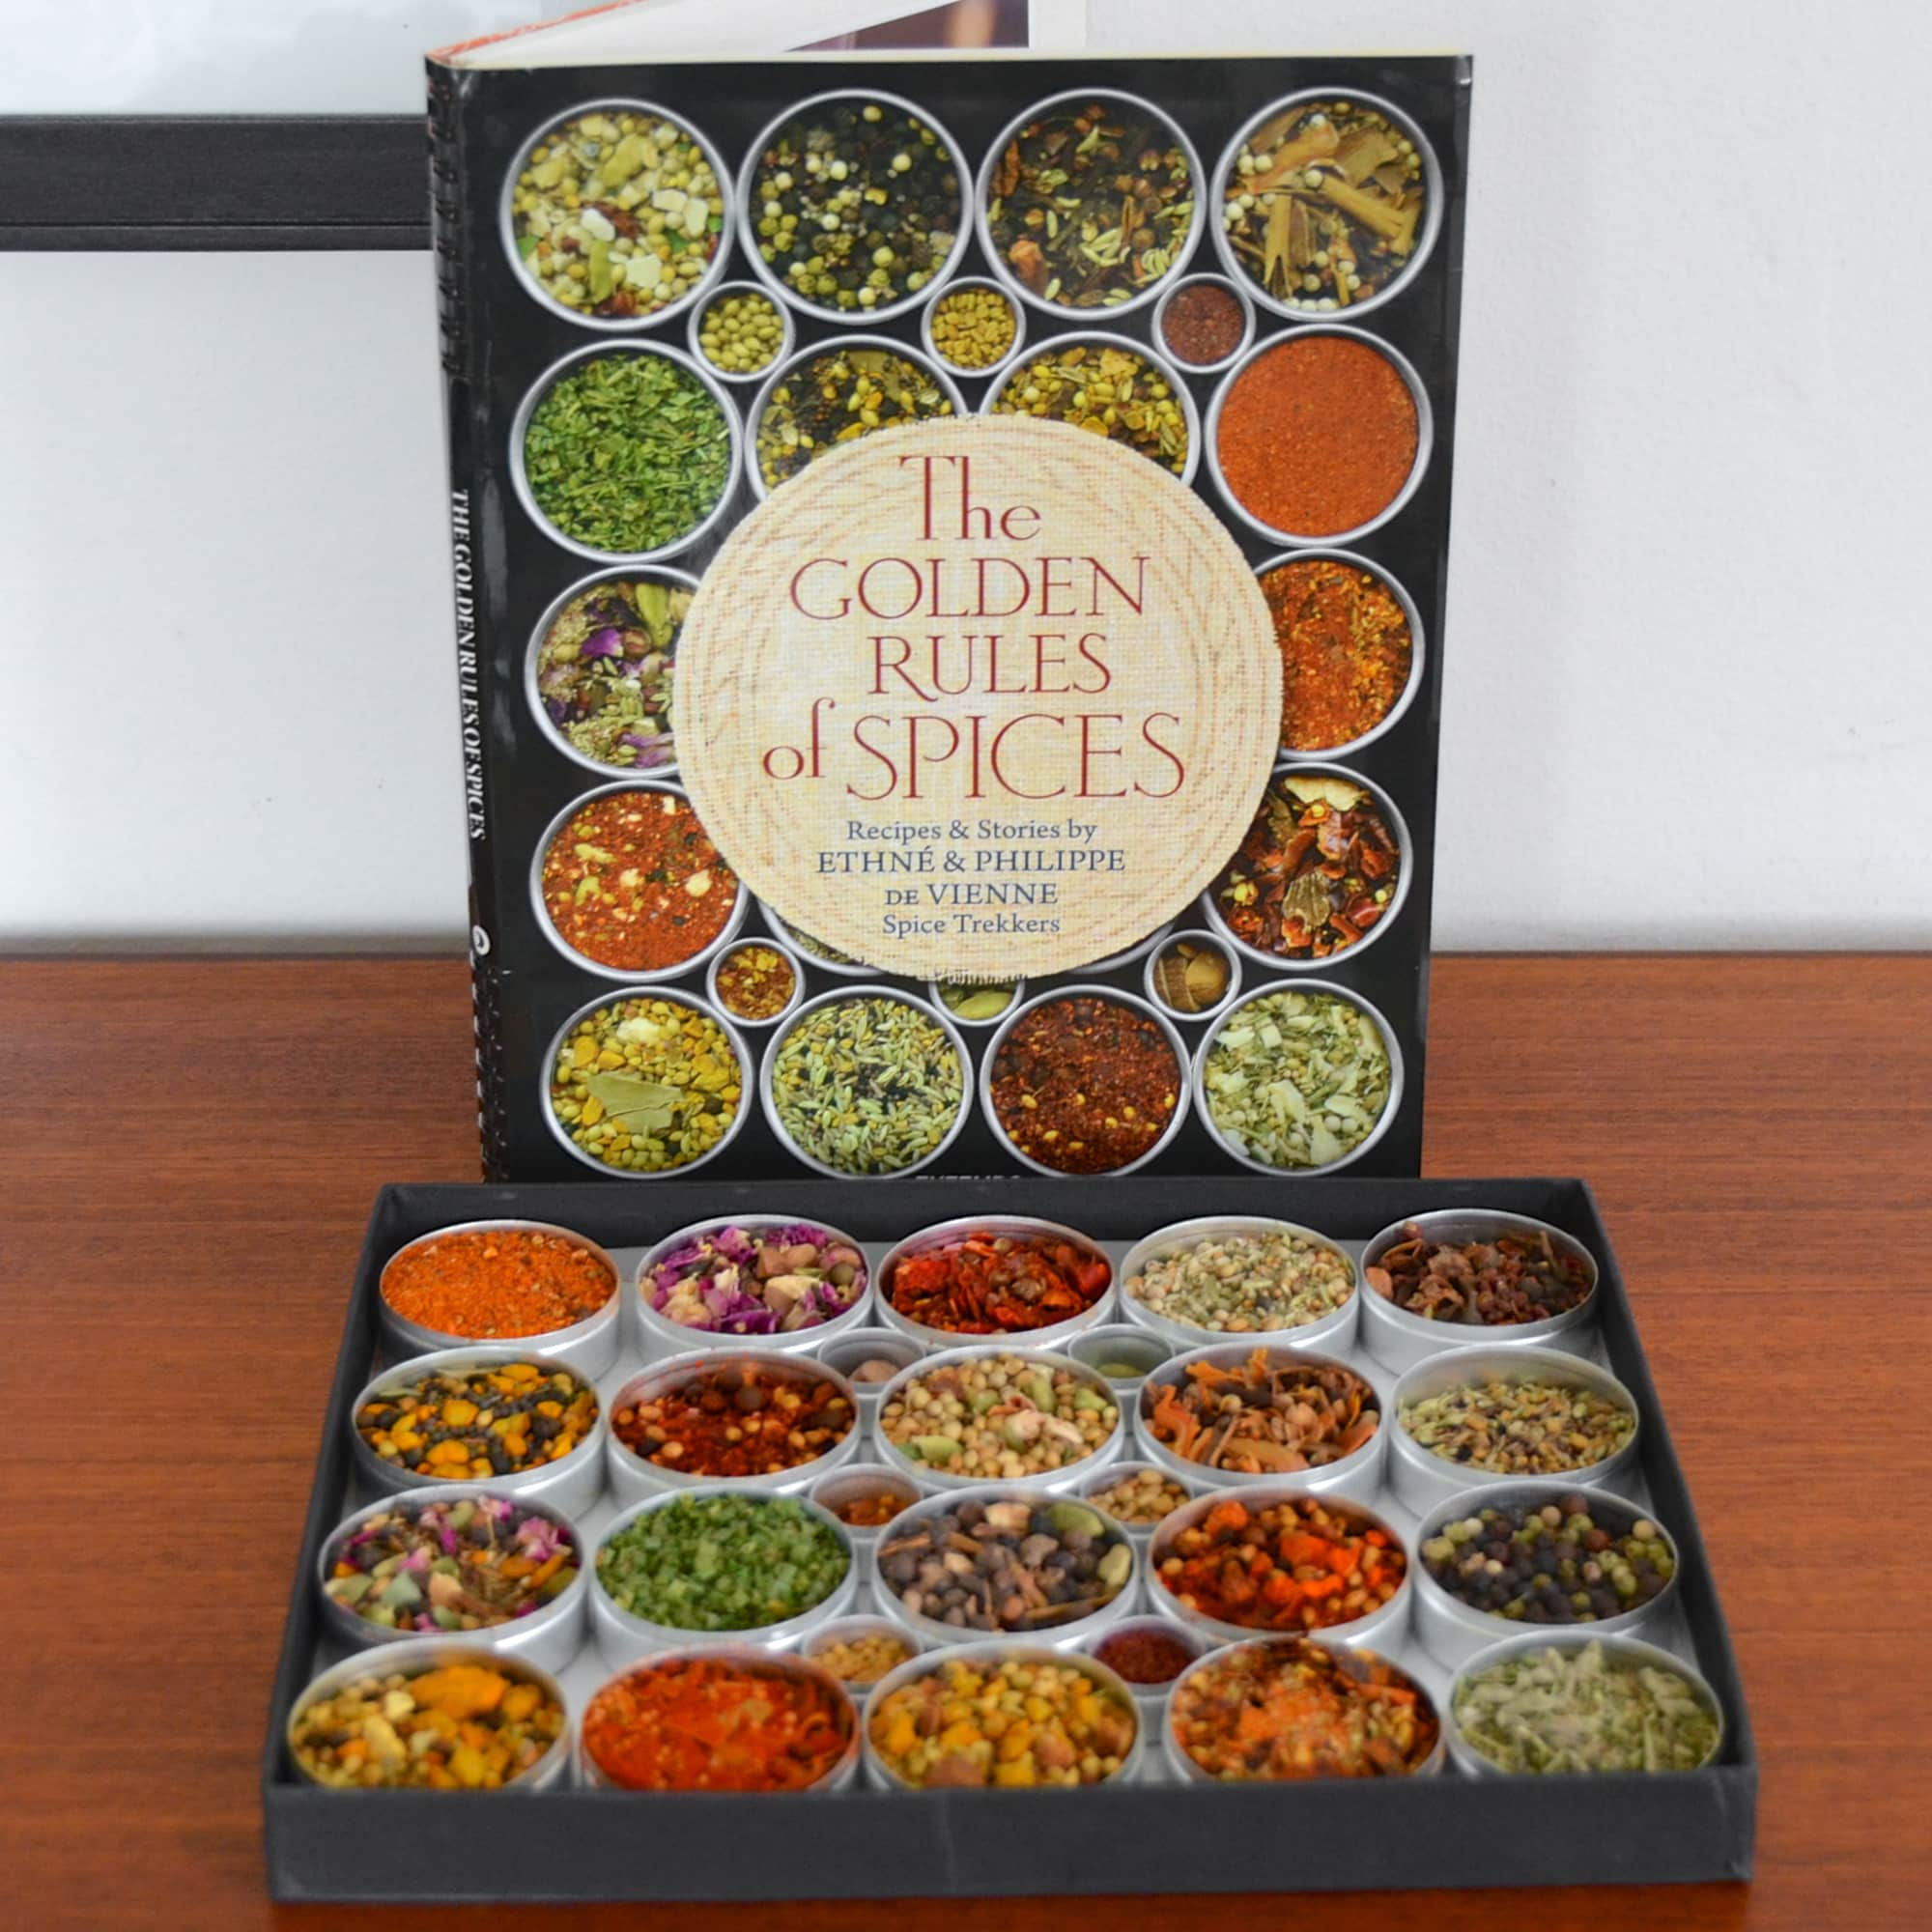 The Golden Rules of Spices by Ethné & Philippe de Vienne: gallery image 1